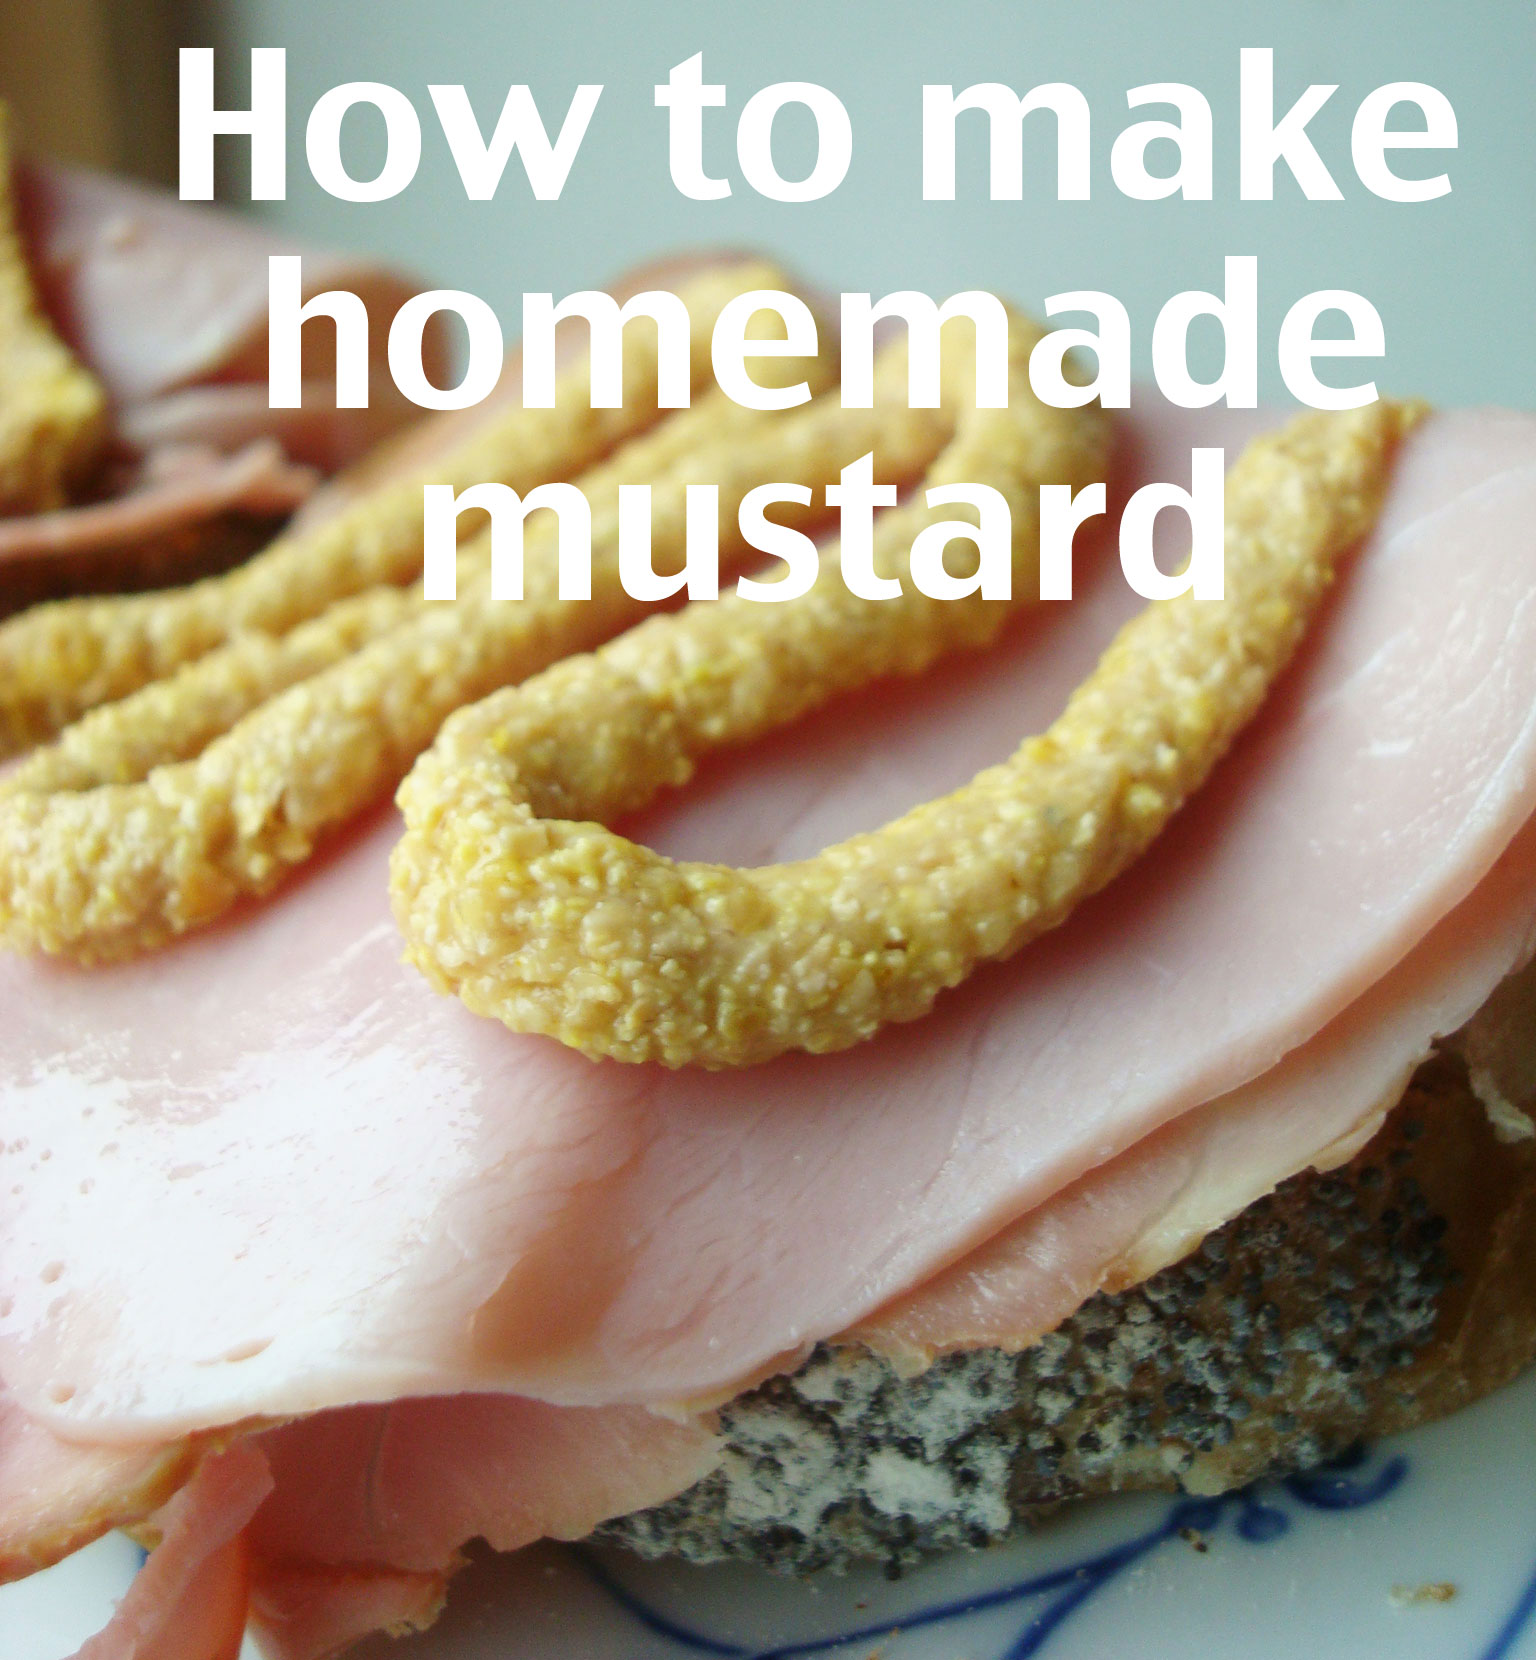 Title Image: How to Make Homemade Mustard